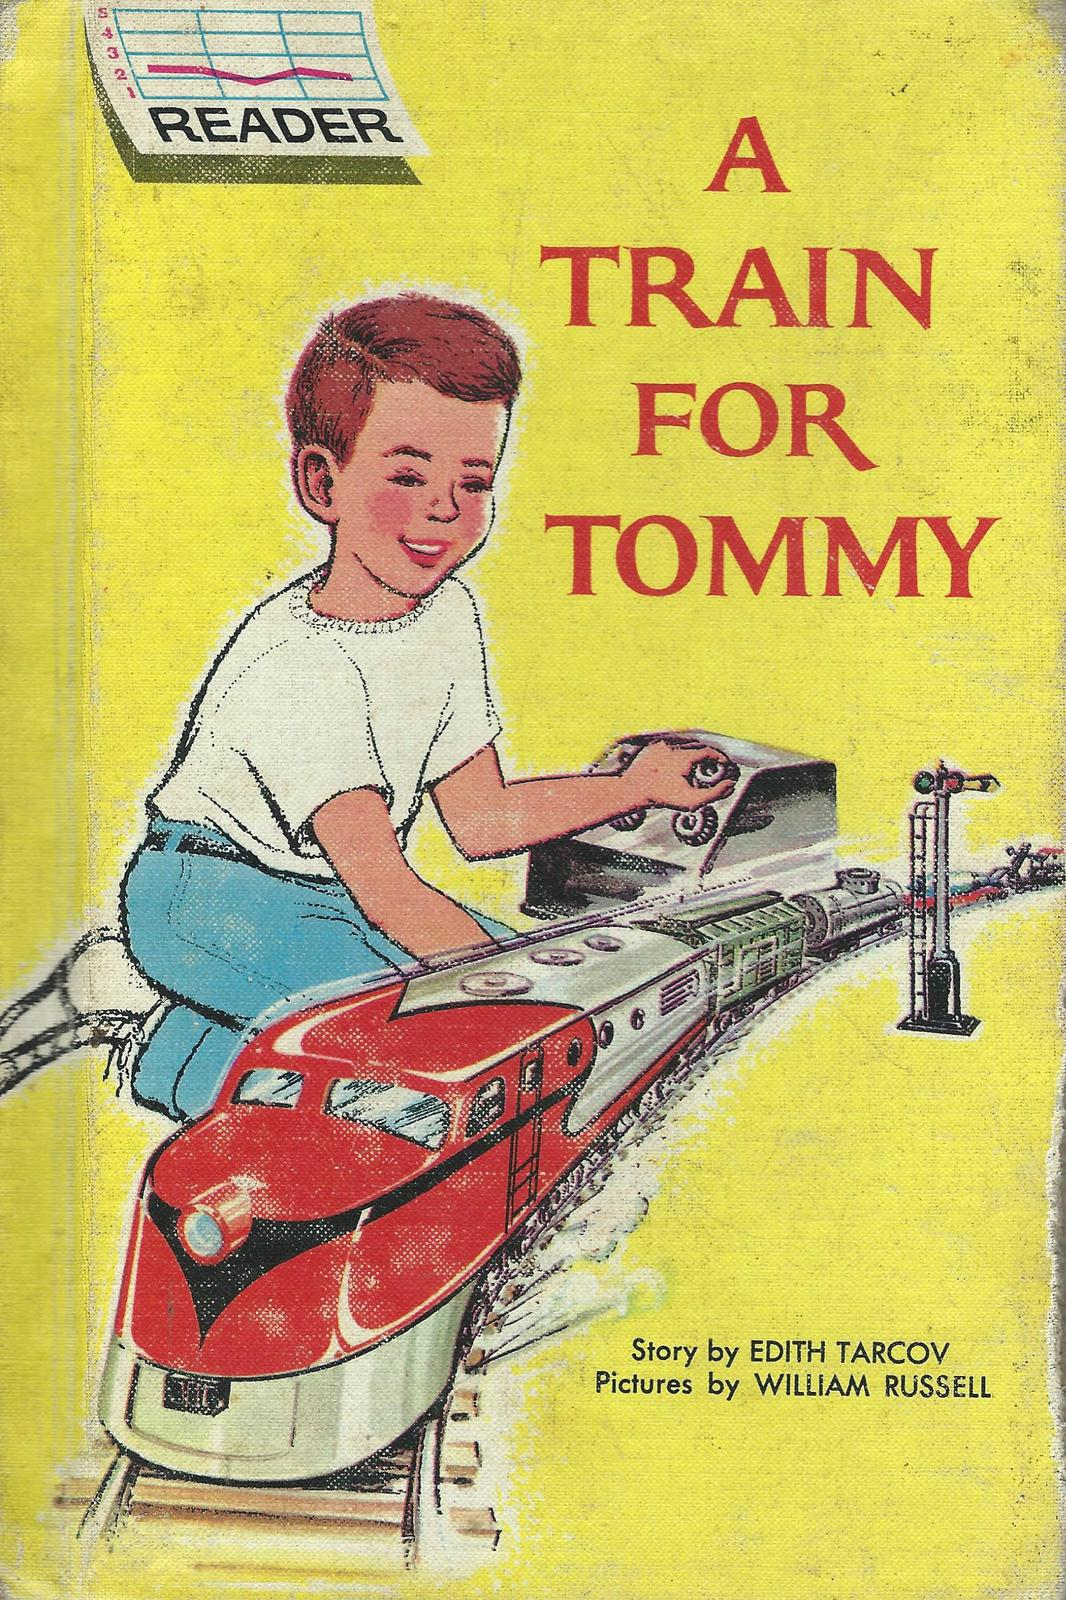 A train for tommy 001